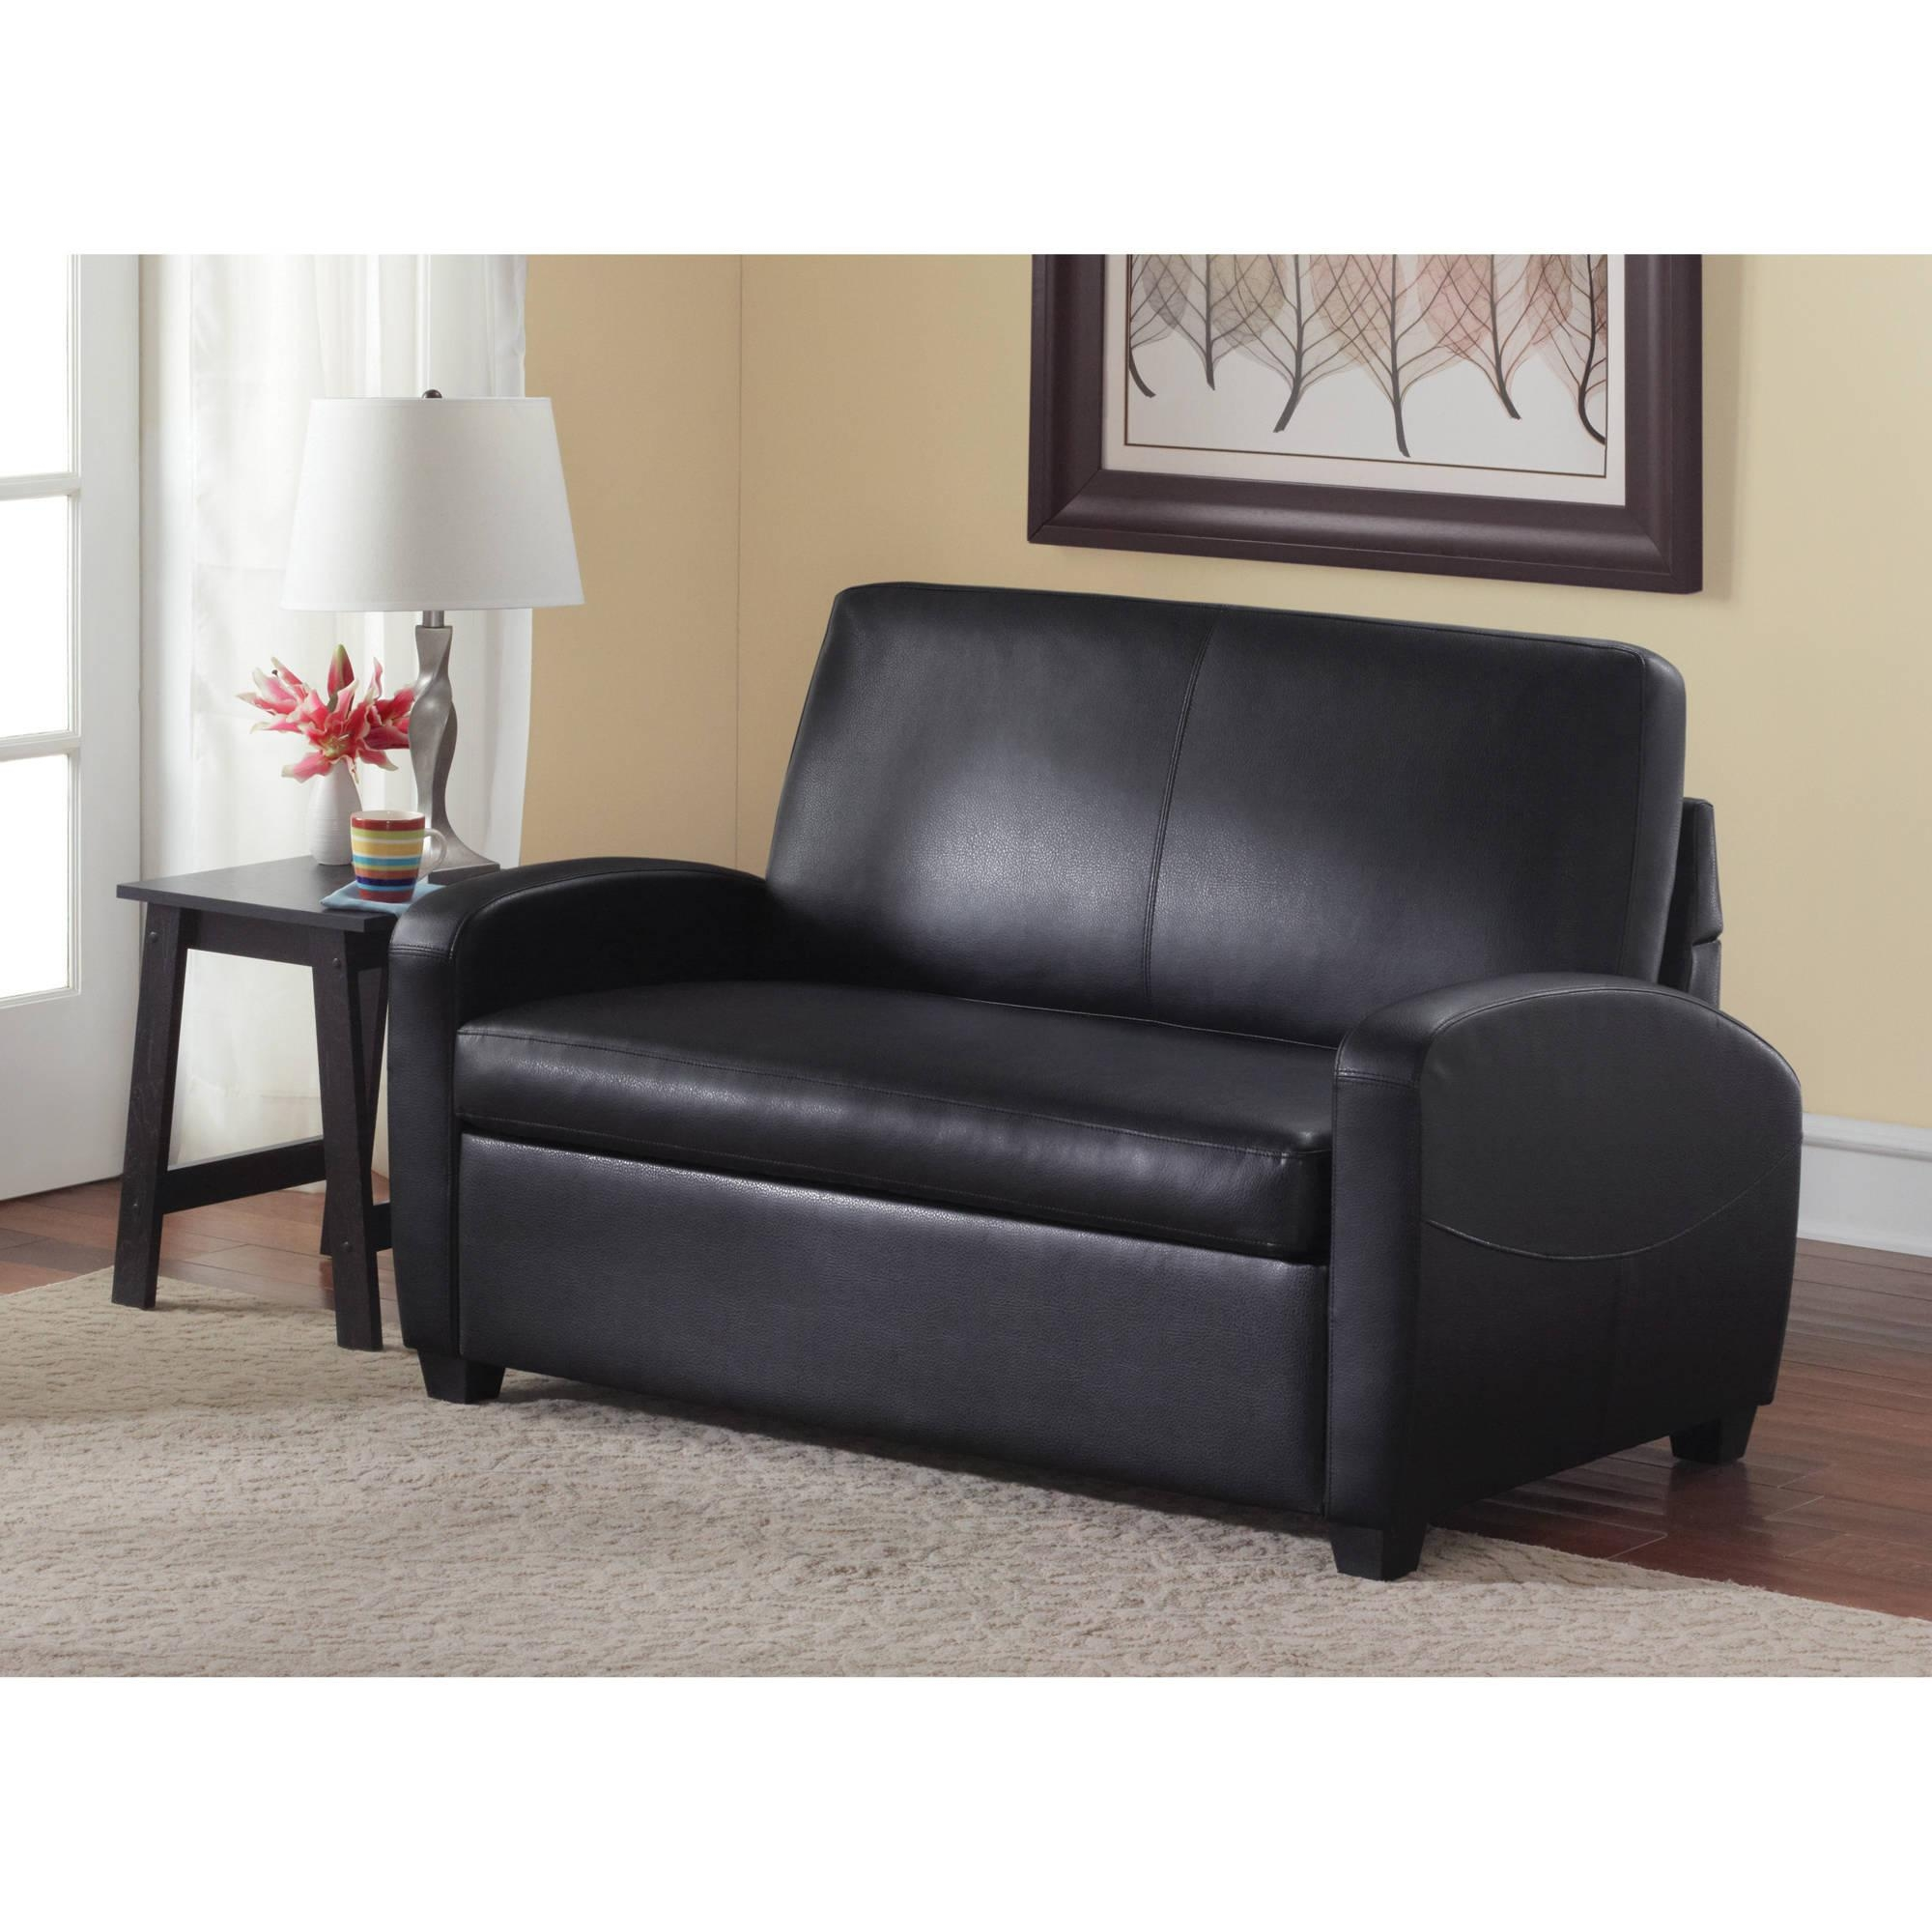 walmart furniture beds 20 best collection of city sofa beds sofa ideas 13777